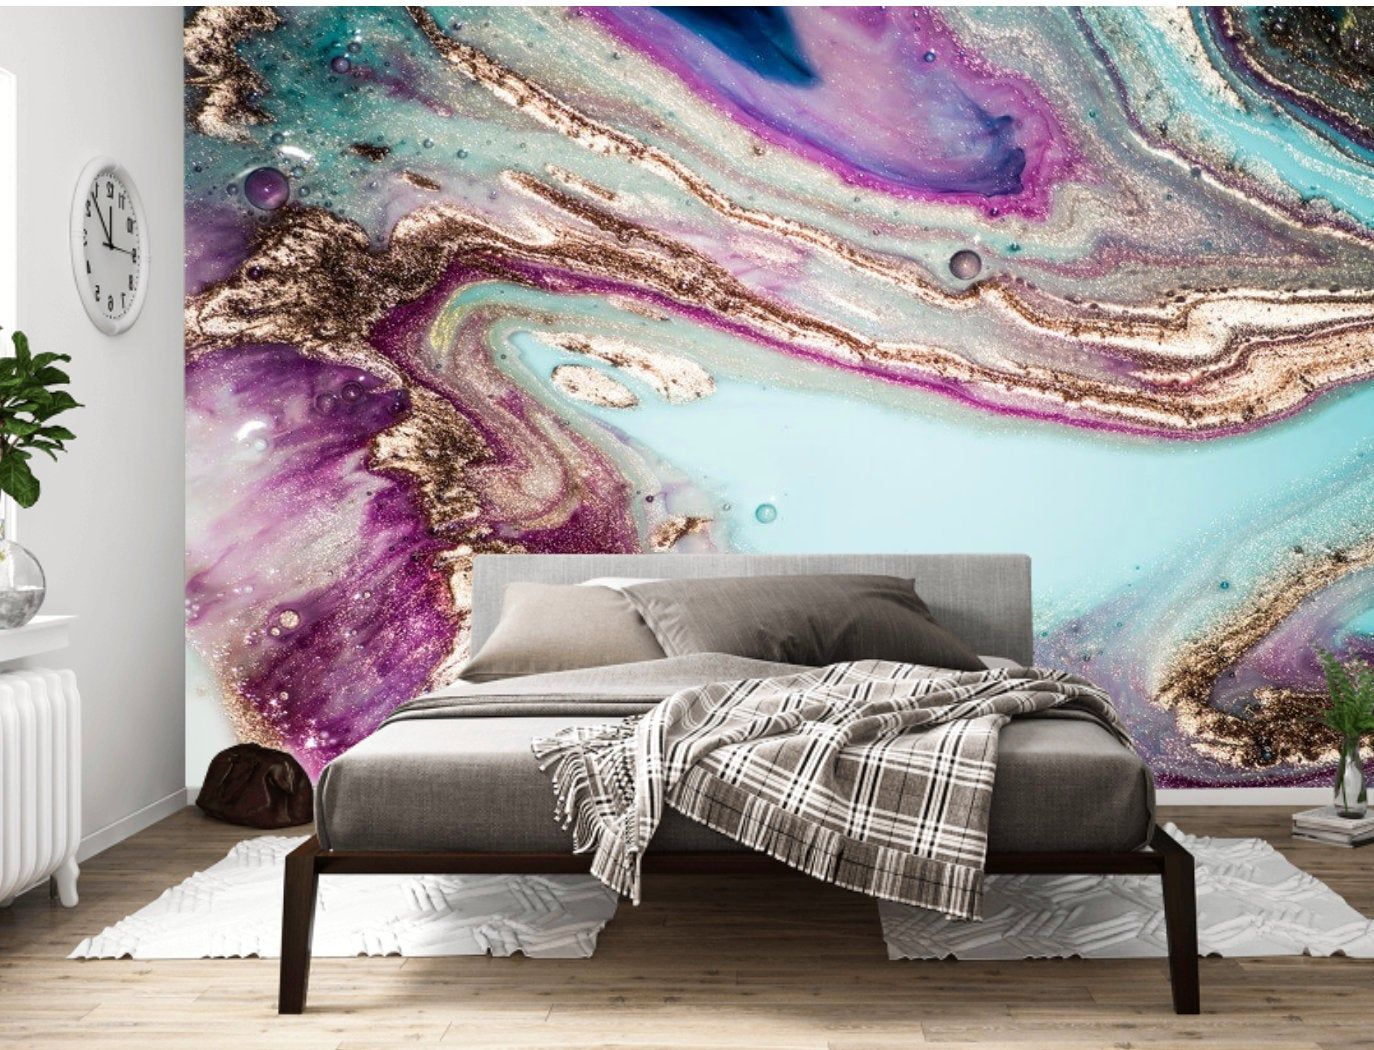 Pink Marble Wallpaper Abstract Blue Wallpaper Peel And Stick Etsy In 2020 Pink Marble Wallpaper Marble Wallpaper Blue Wallpapers